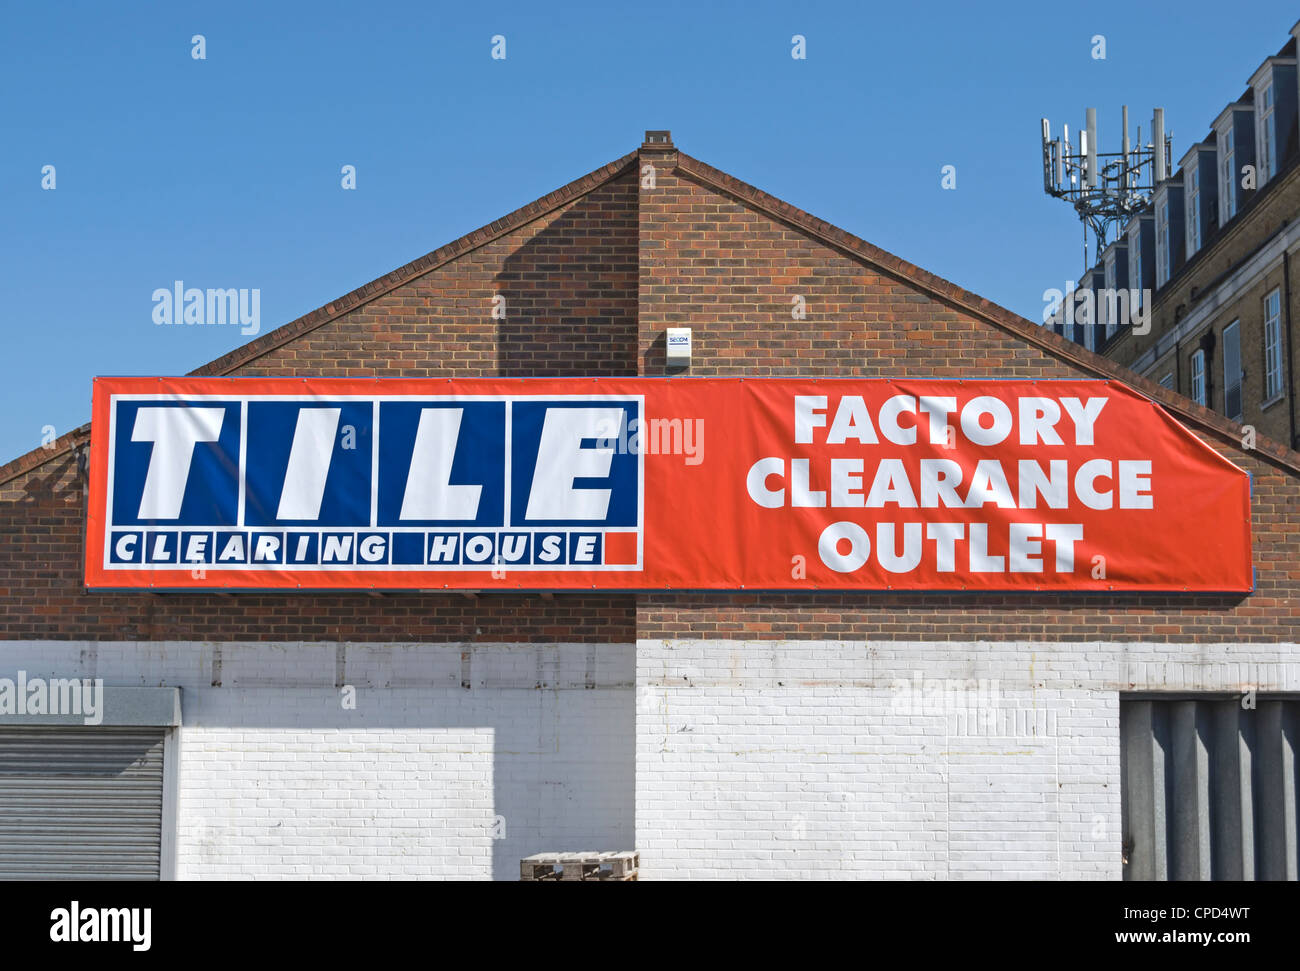 Discount Factory Outlet Stock Photos Discount Factory Outlet Stock - Discounted tile factory